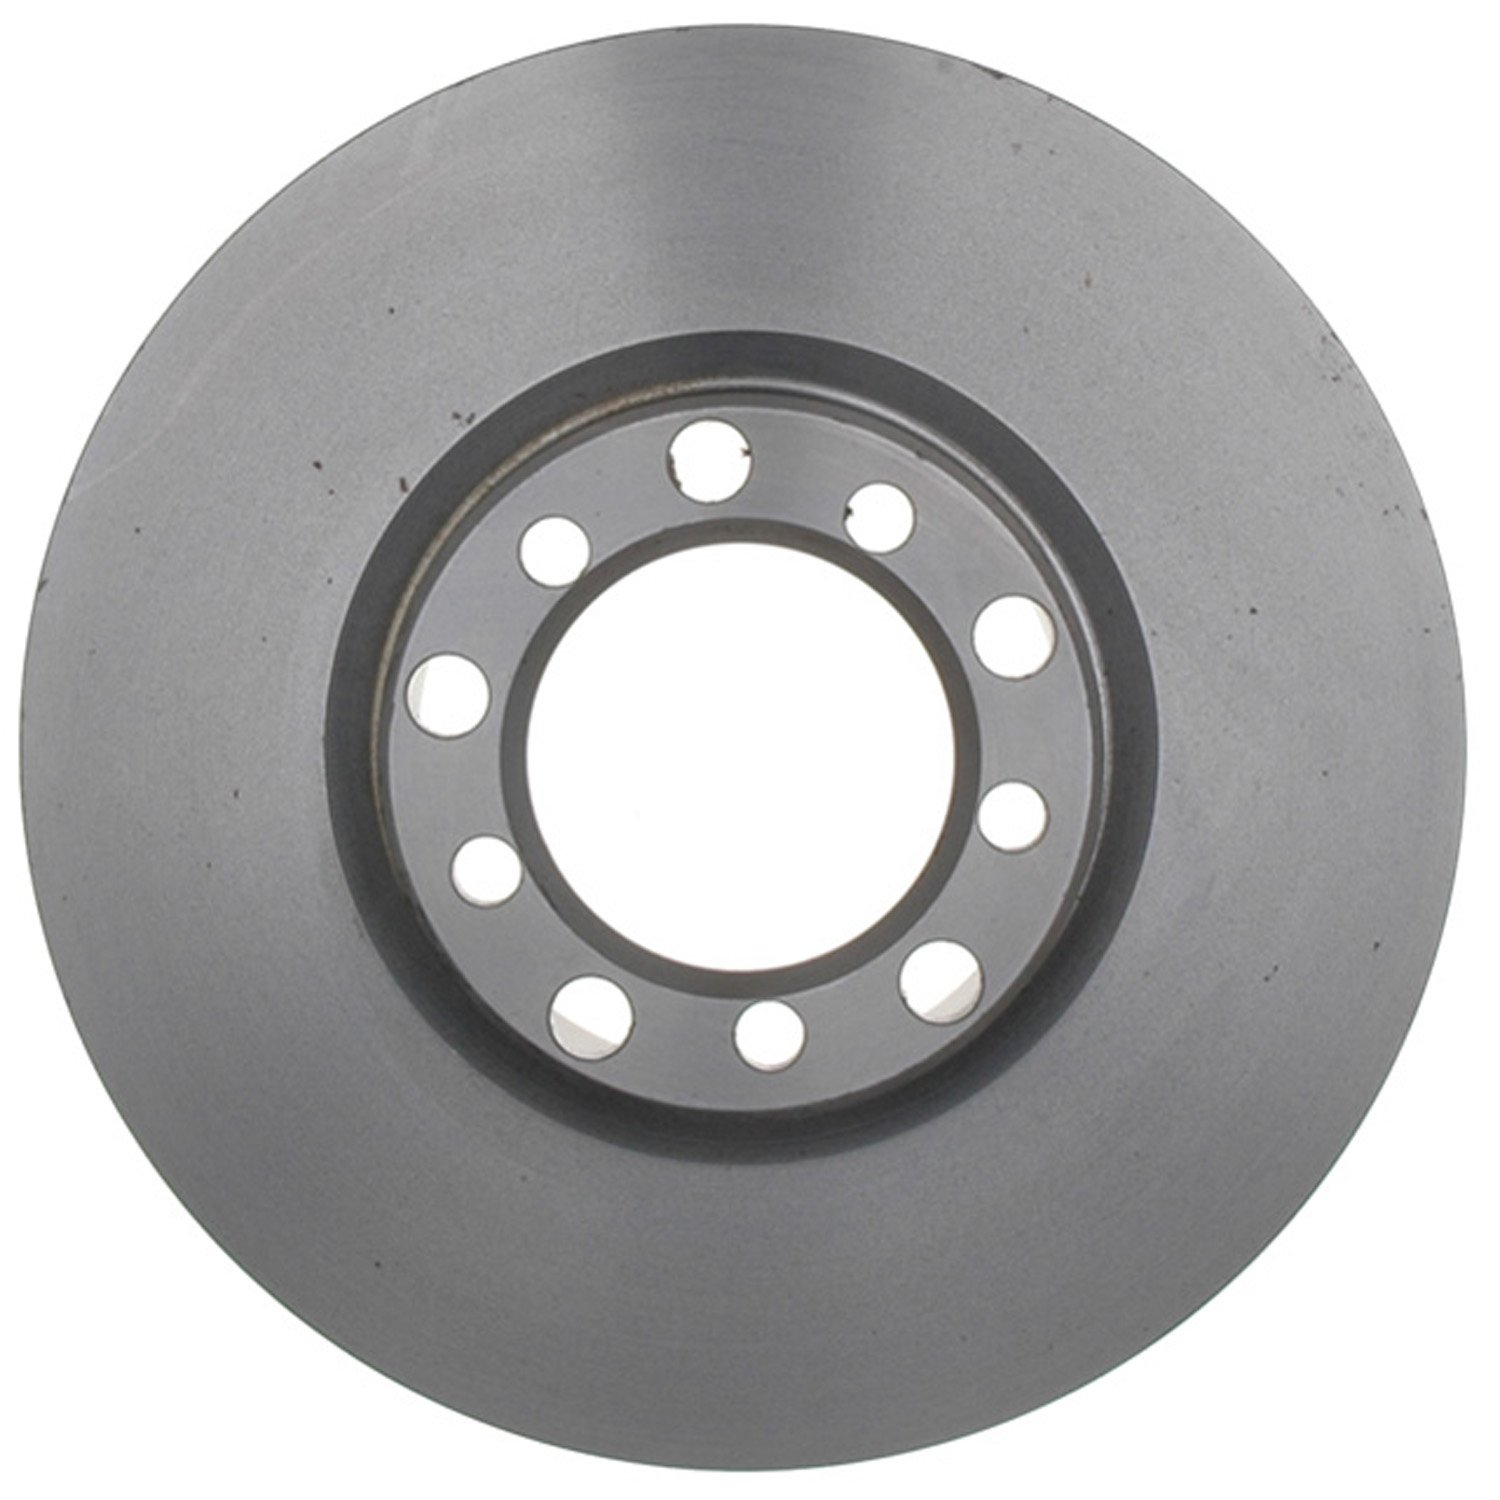 ACDelco 18A547 Professional Front Disc Brake Rotor Assembly